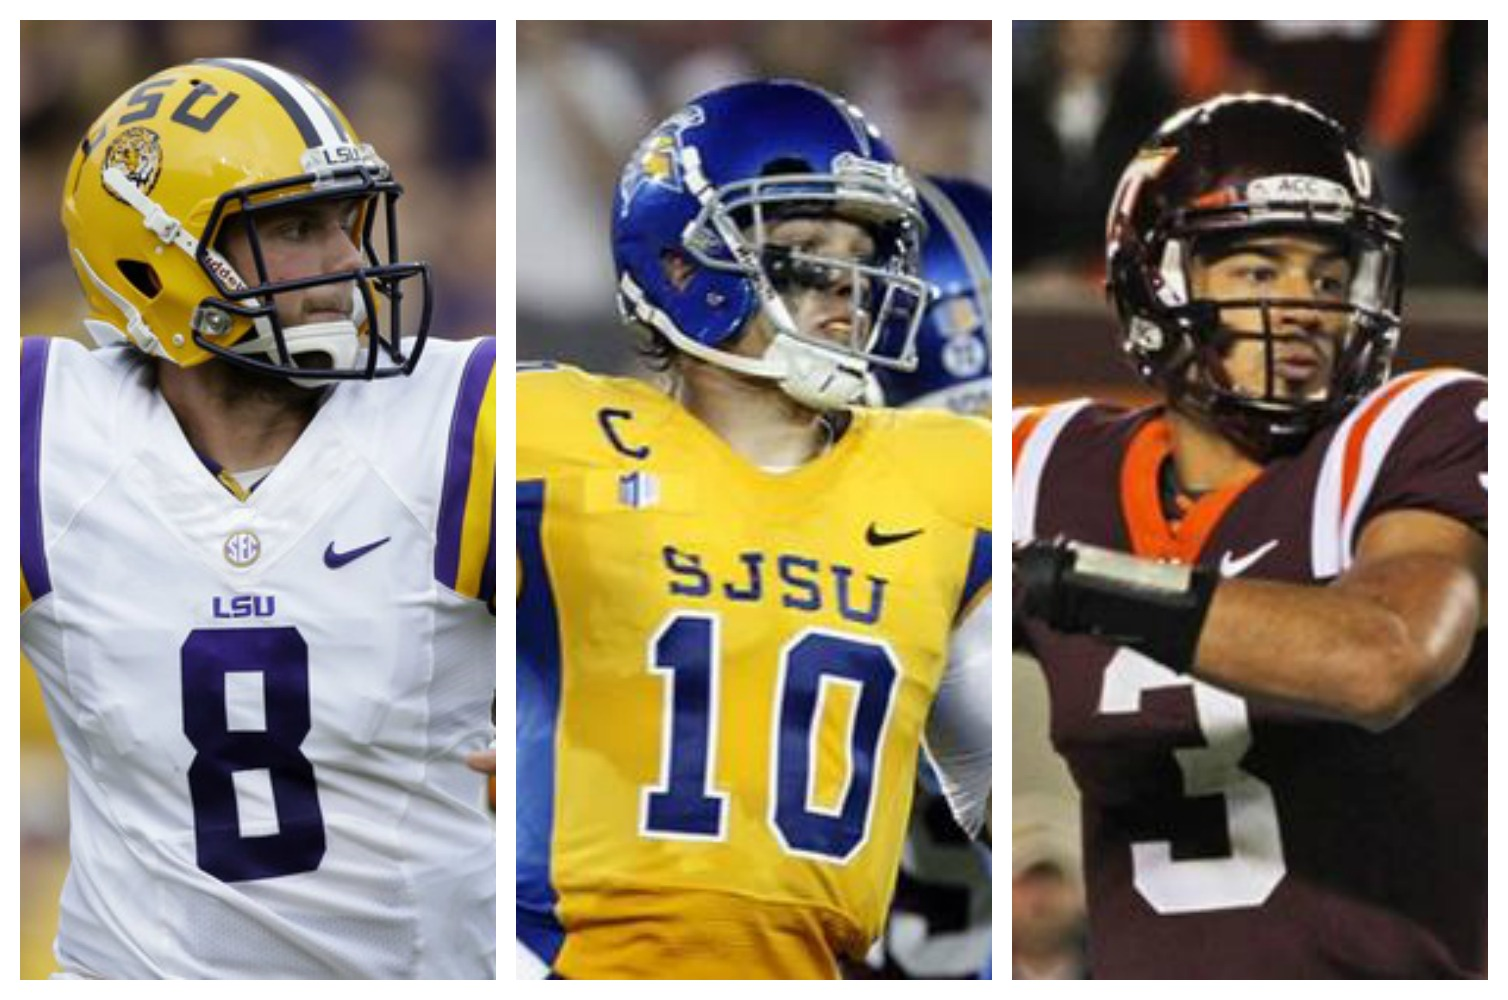 Mettenberger, Fales, and Thomas all could be options for the Packers.